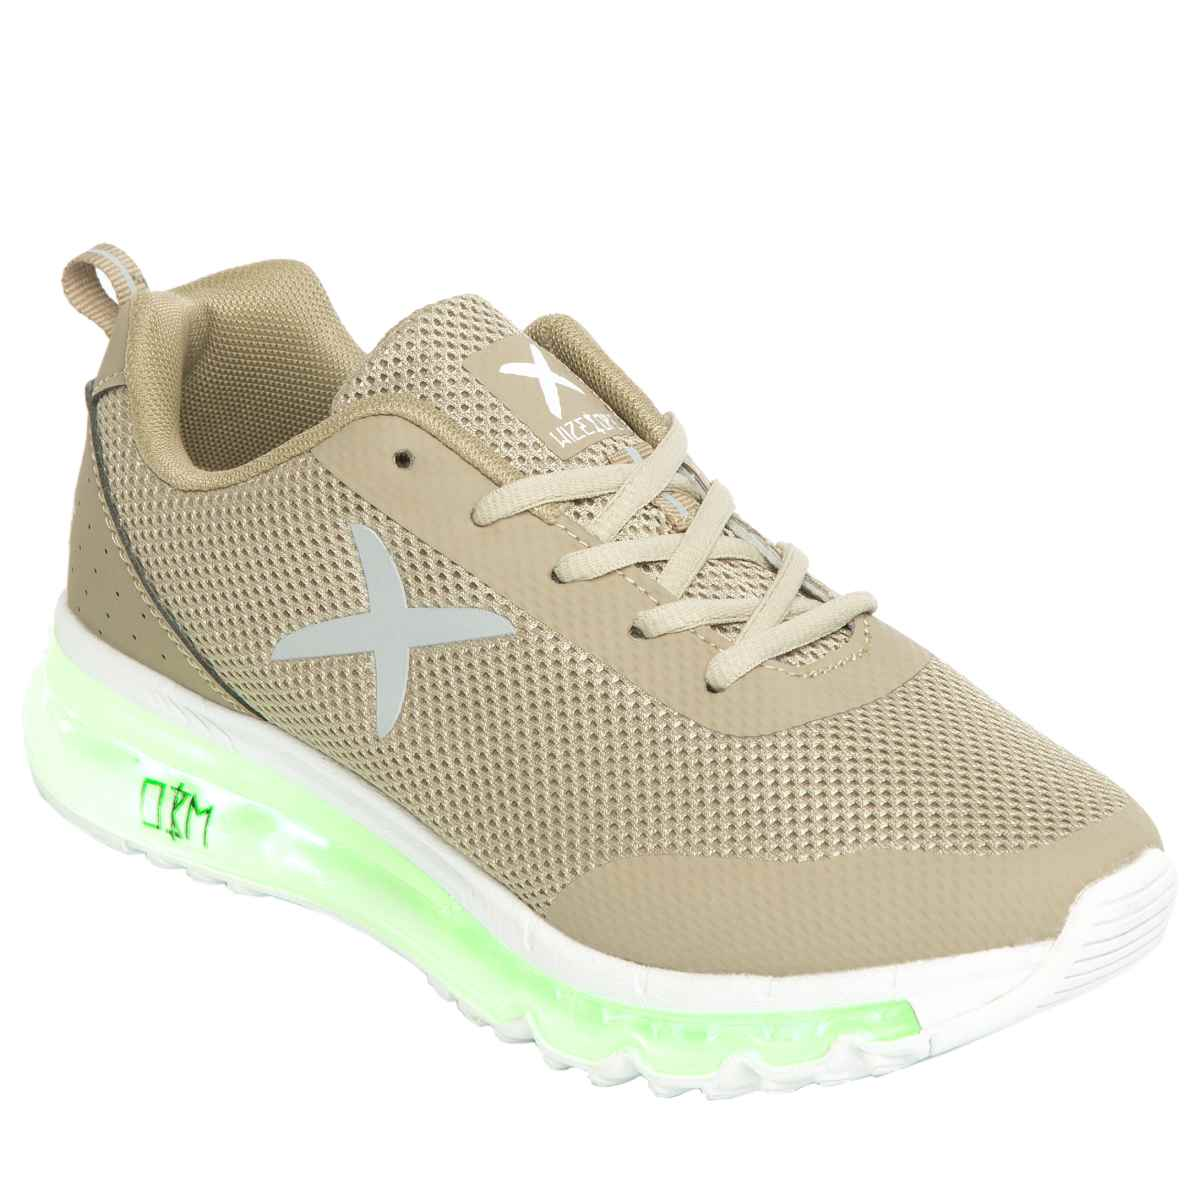 wize & ope Wize & Ope Beige Xrun Trainers